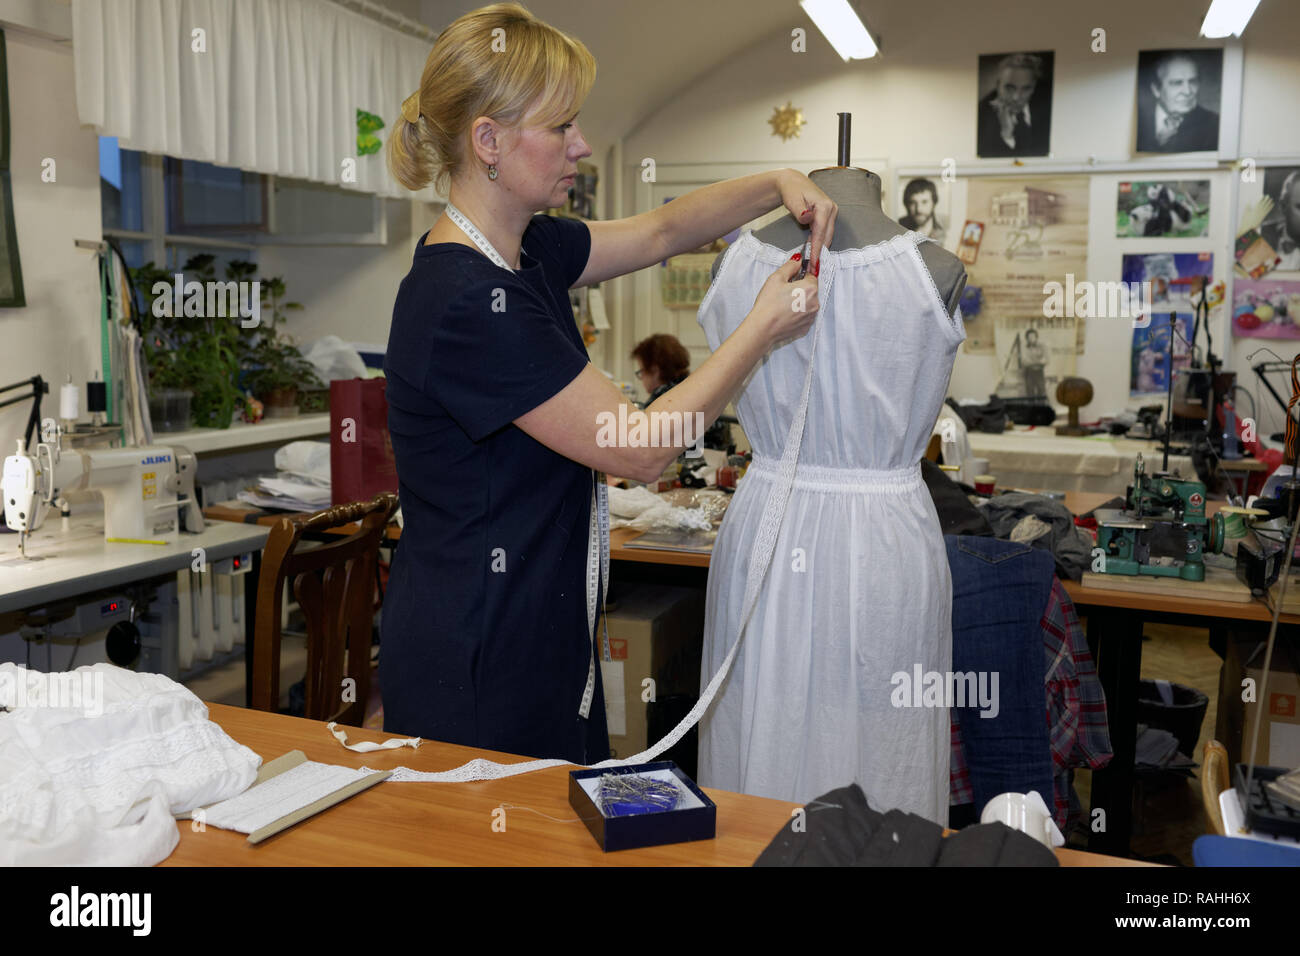 St. Petersburg, Russia - October 26, 2016: Unidentified apparel cutter at work in the Alexandrinsky theater. The theater was created in 1756 by the or Stock Photo